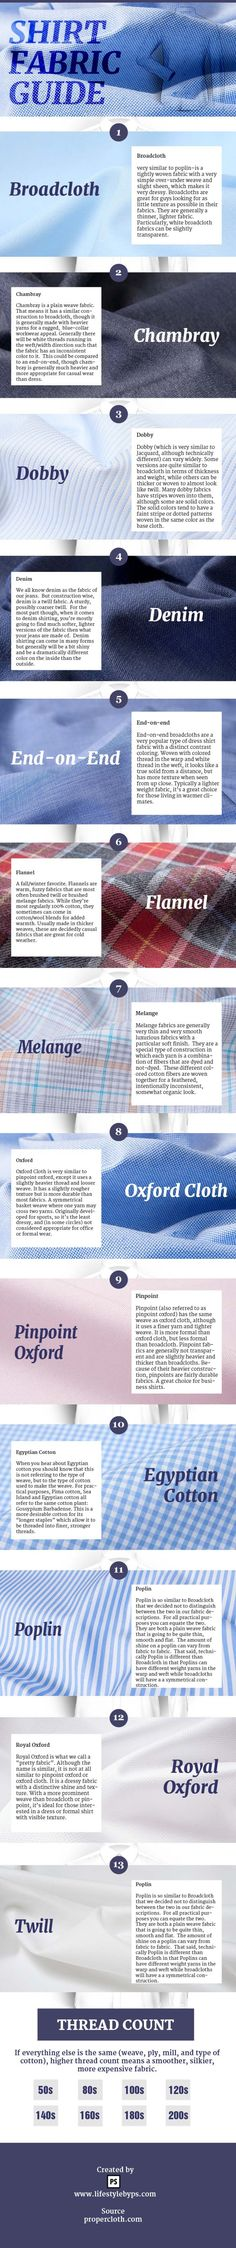 shirt-fabric-guide-infographic_532979cd85f8c_w1500.jpg (1500×14292)